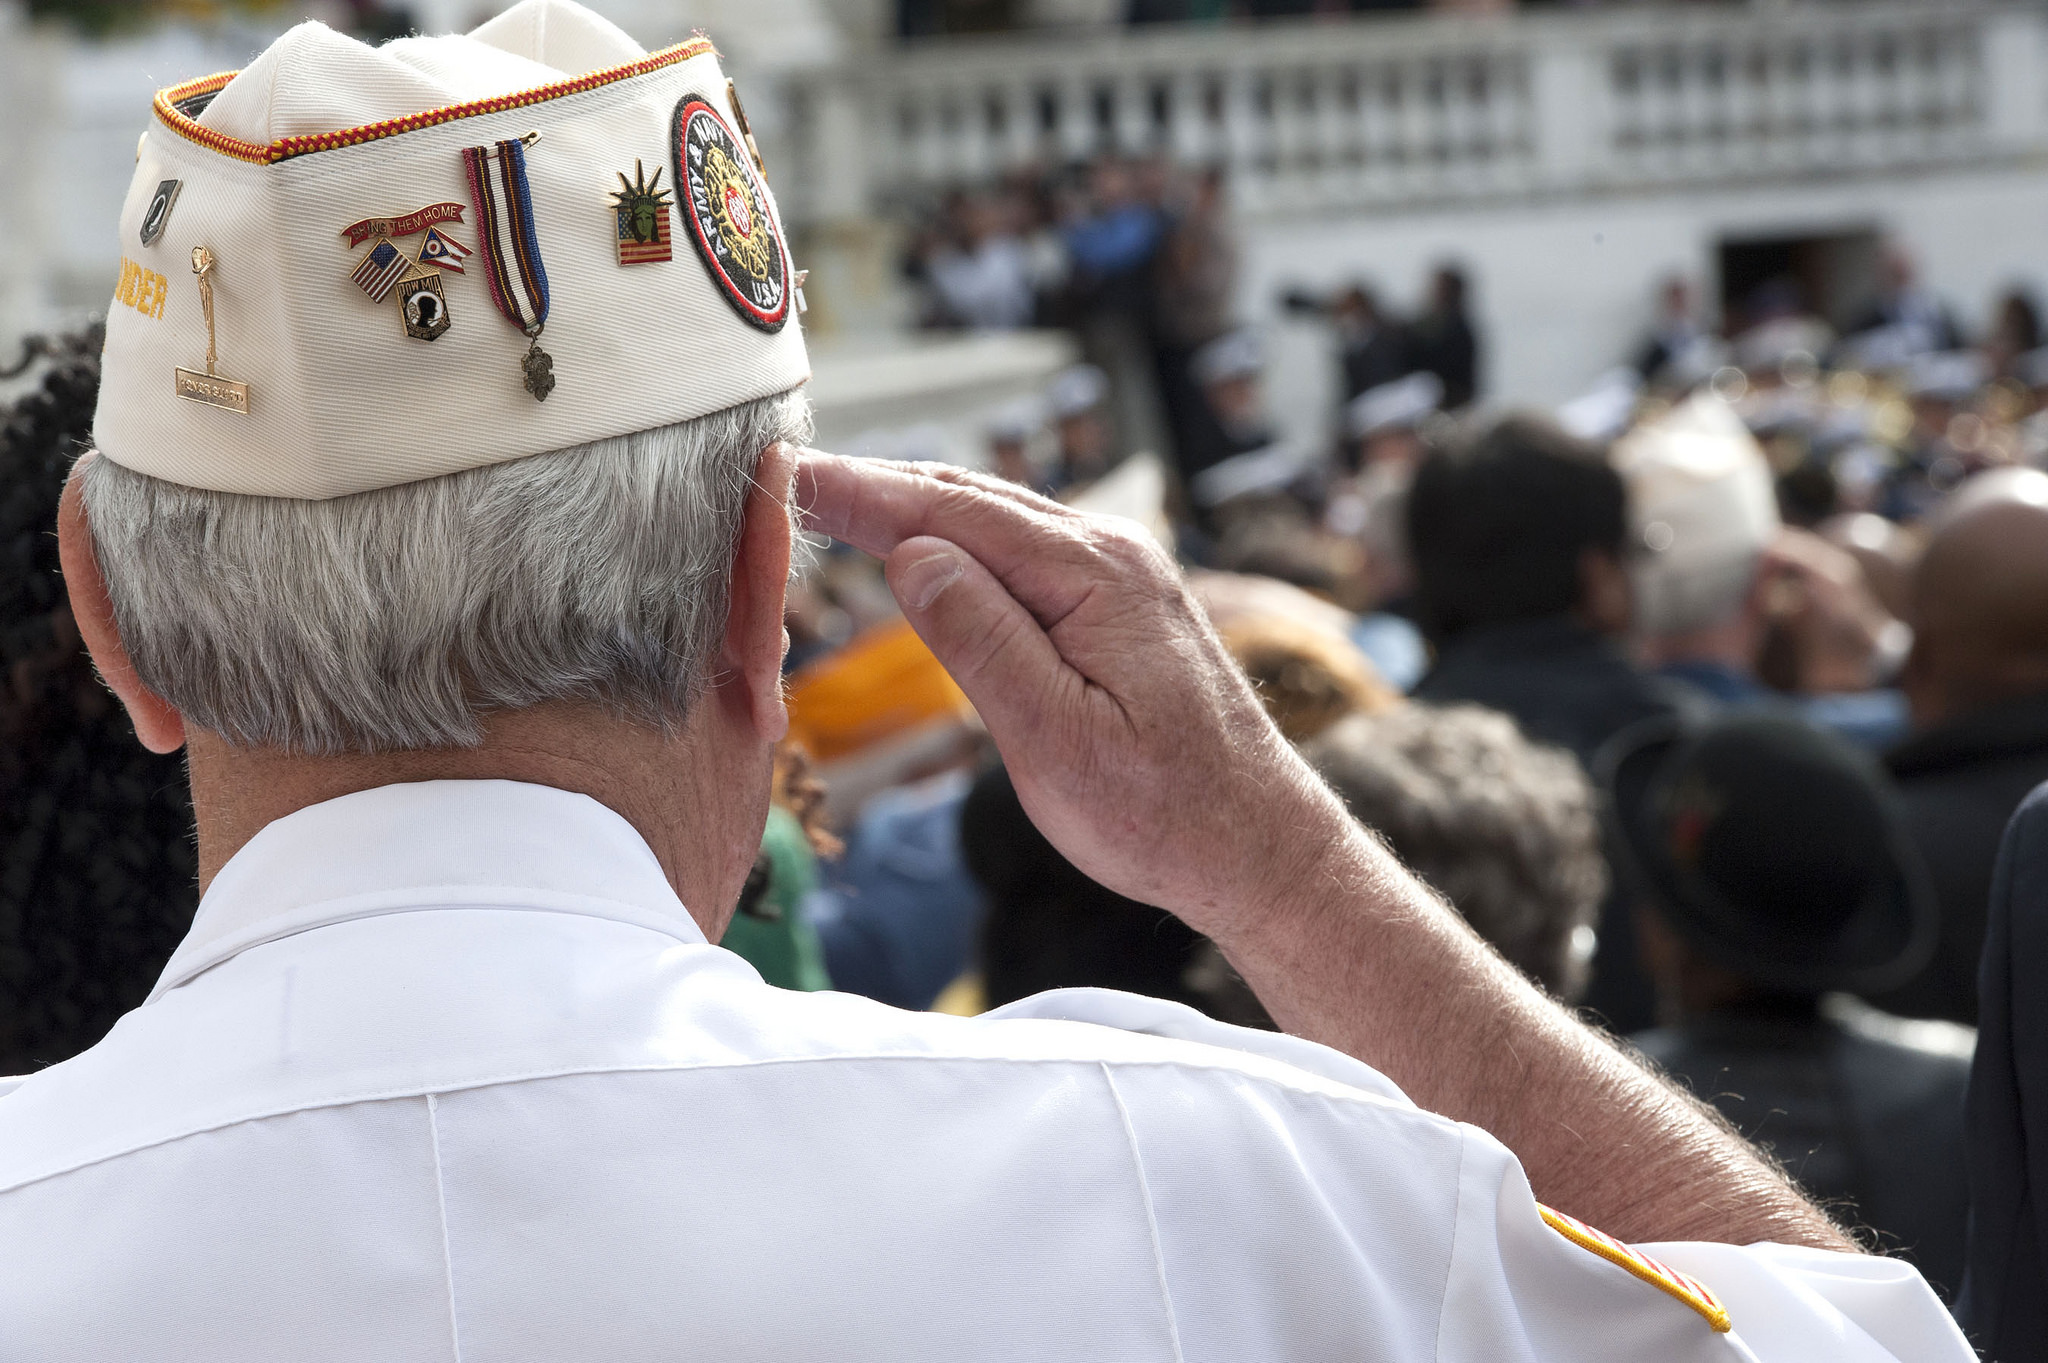 Veterans ID cards to be available starting in November